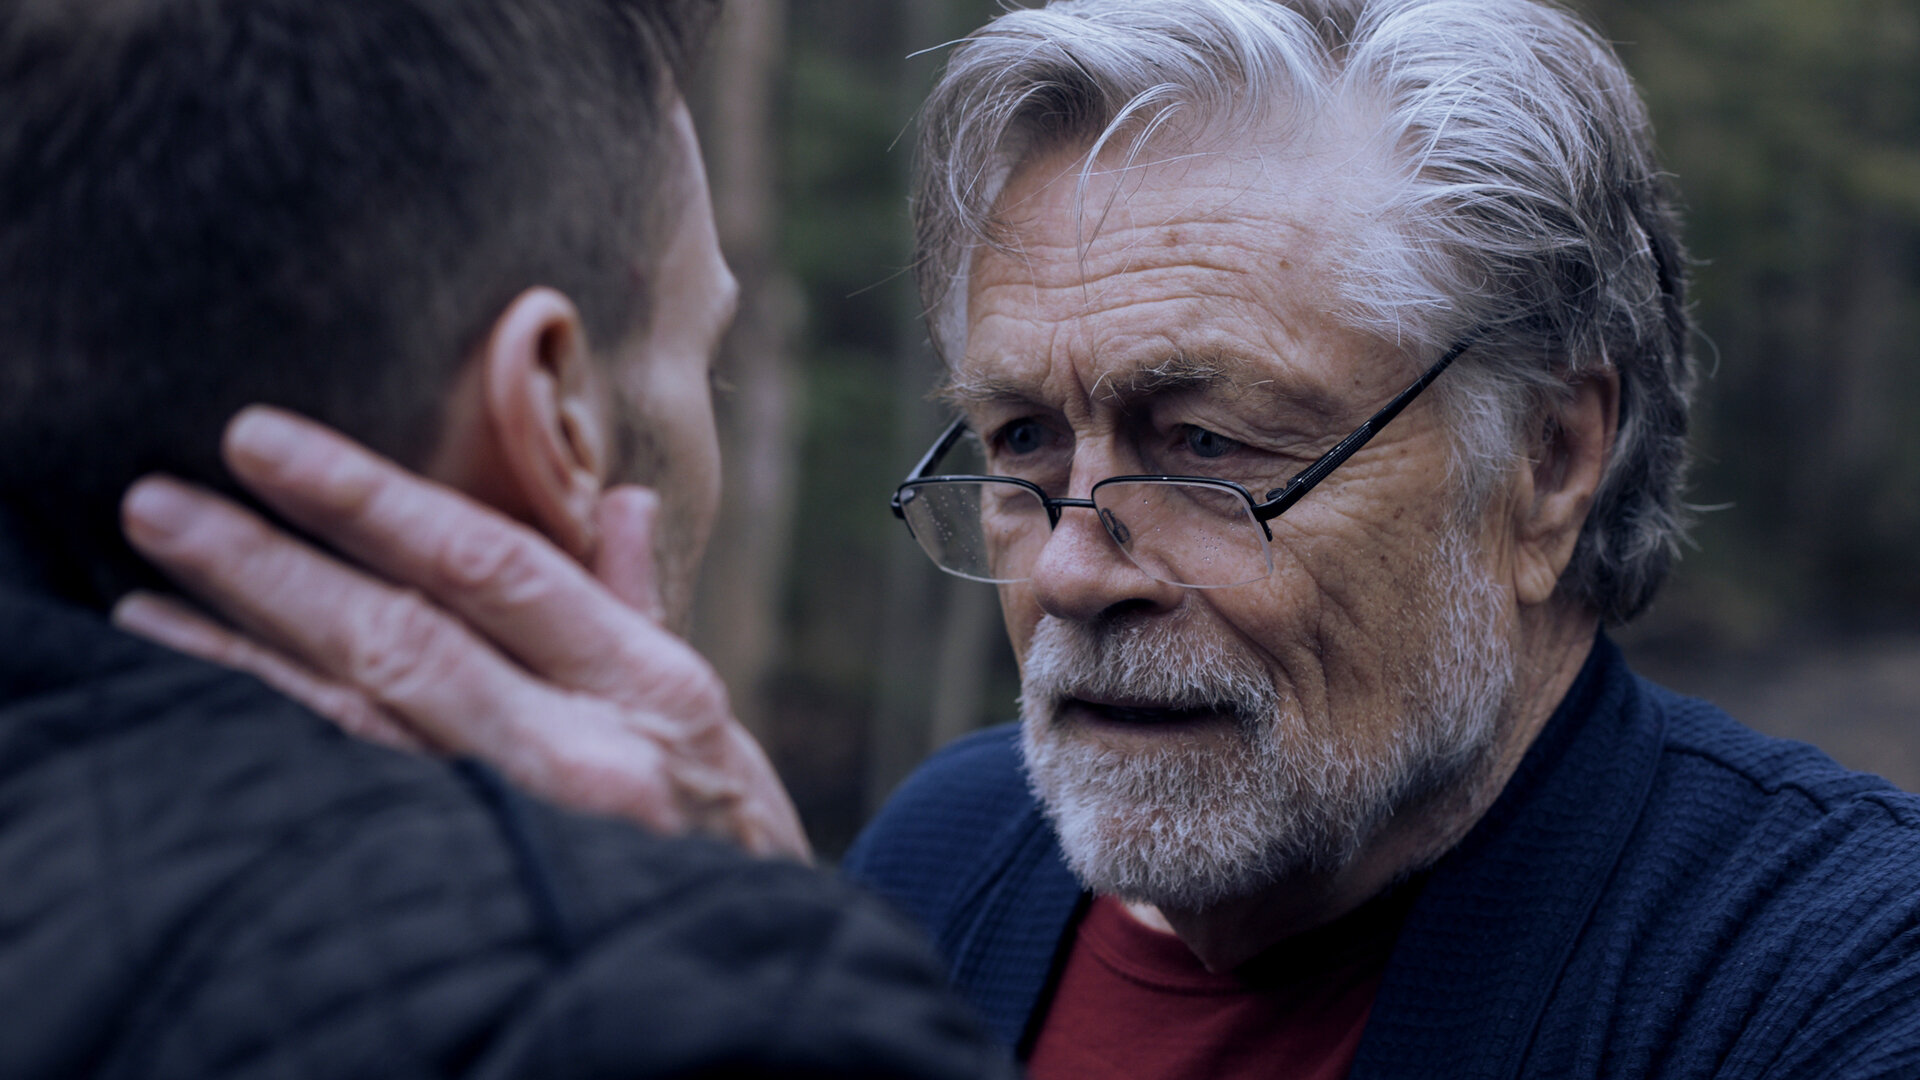 Art Hindle is an ex-convict with dementia, advising his son (Jeremy Ferdman) on the finer points of criminality.